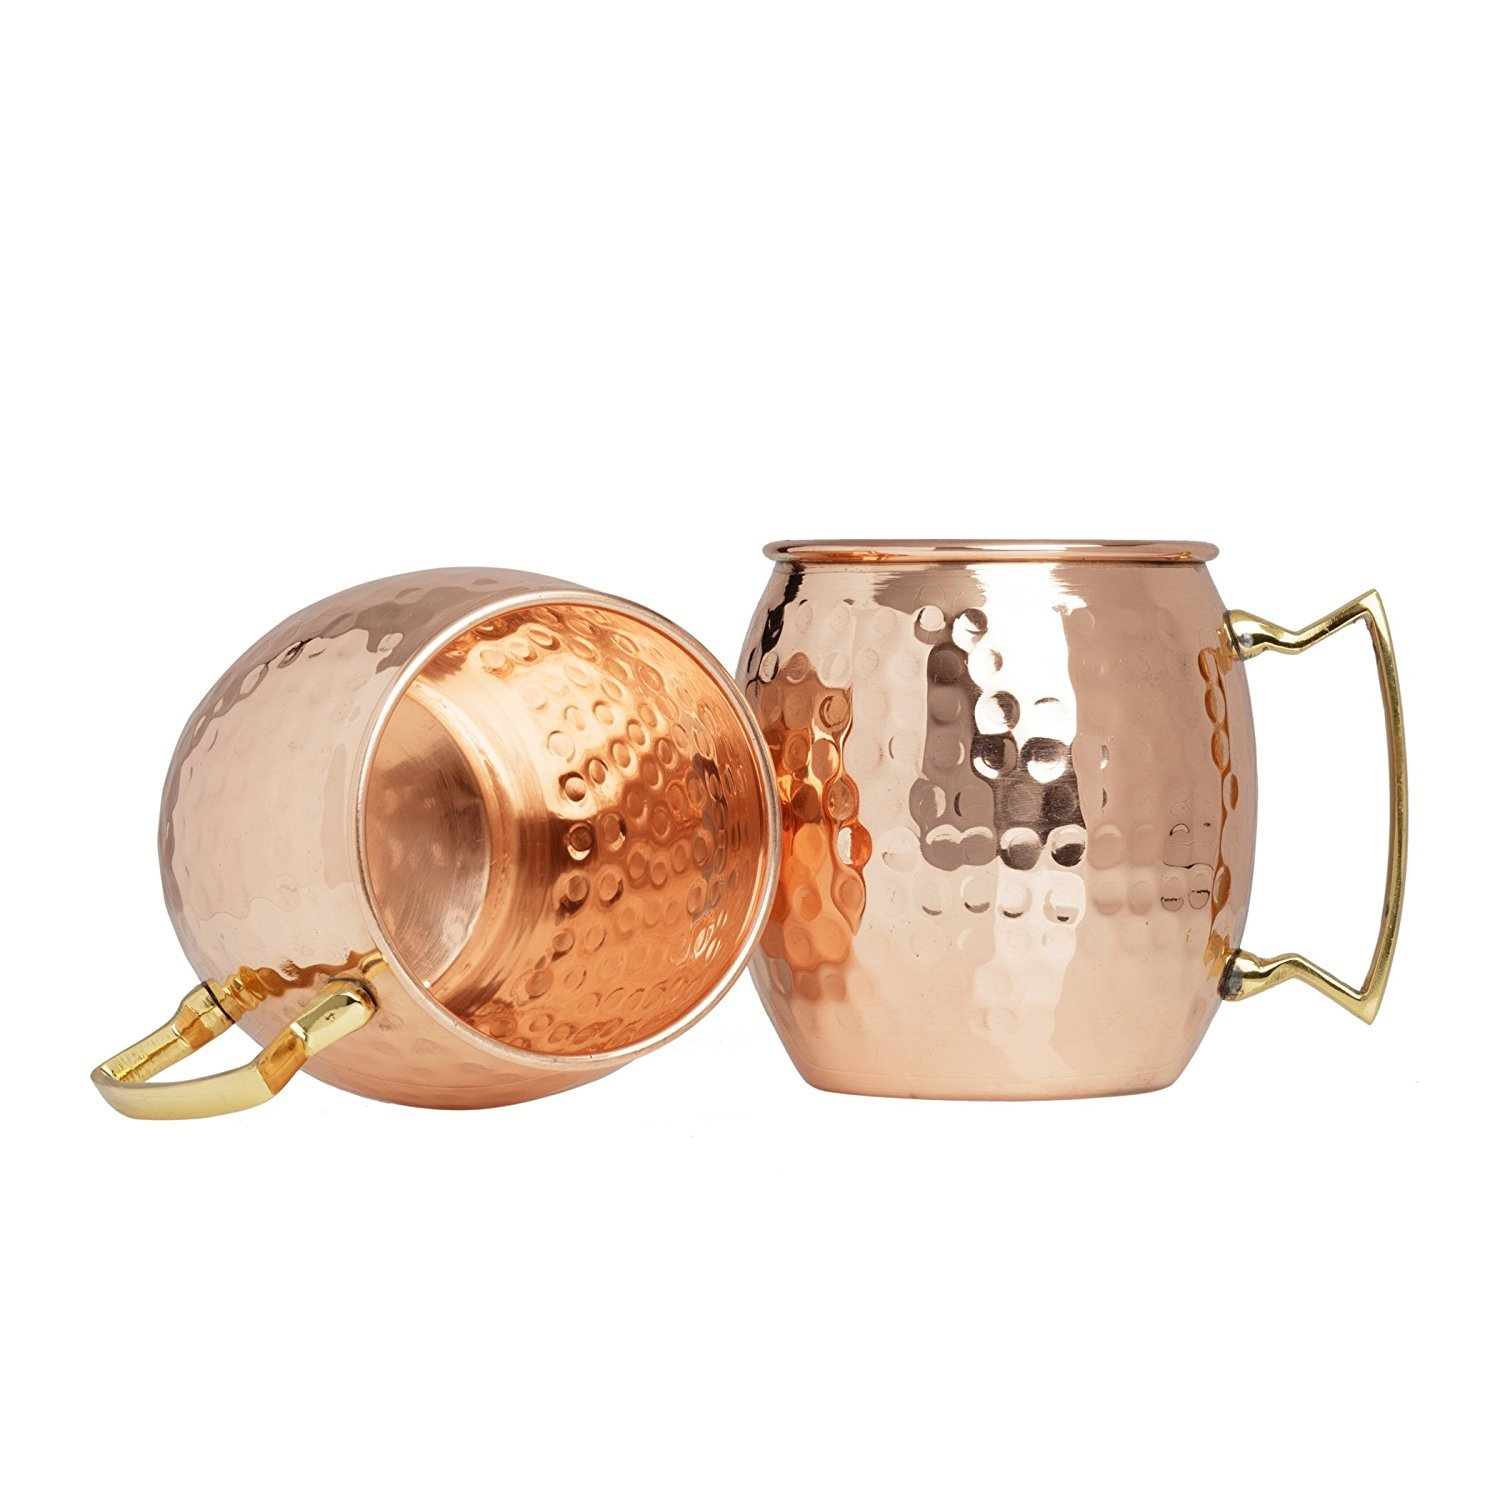 Kitchen Science Moscow Mule Copper Mugs 16 Ounce with 8 Straws and Jigger Set by Kitchen Science (Image #6)